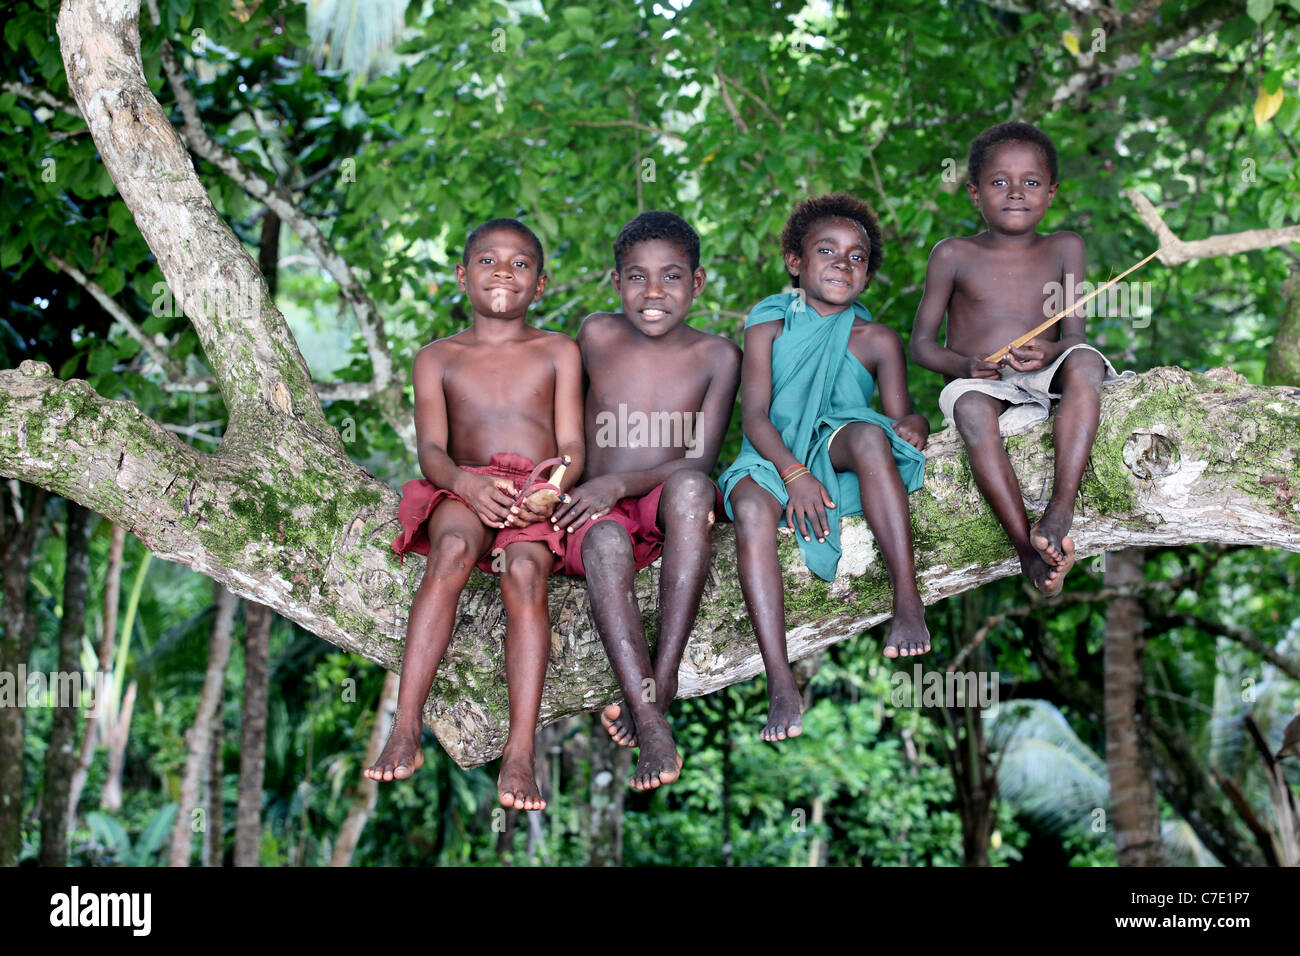 Boys siting on a trunk of a tree, Bougainville Island, Papua New Guinea - Stock Image